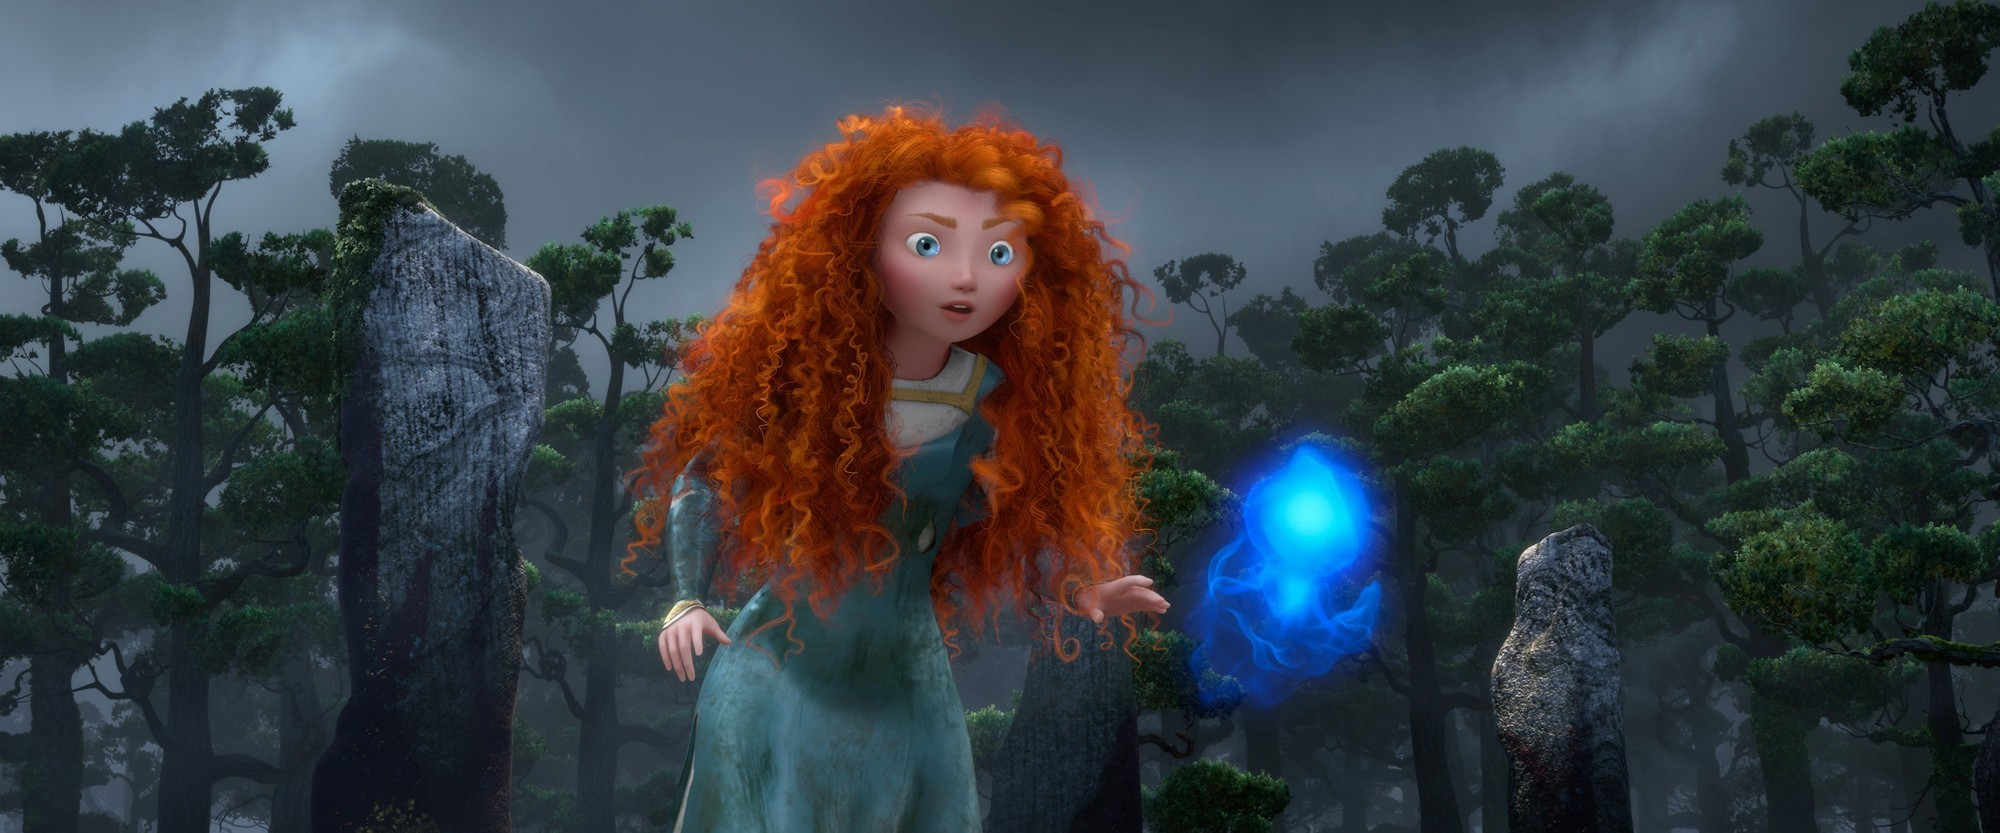 """Brave"" Trailer From Disney Released"